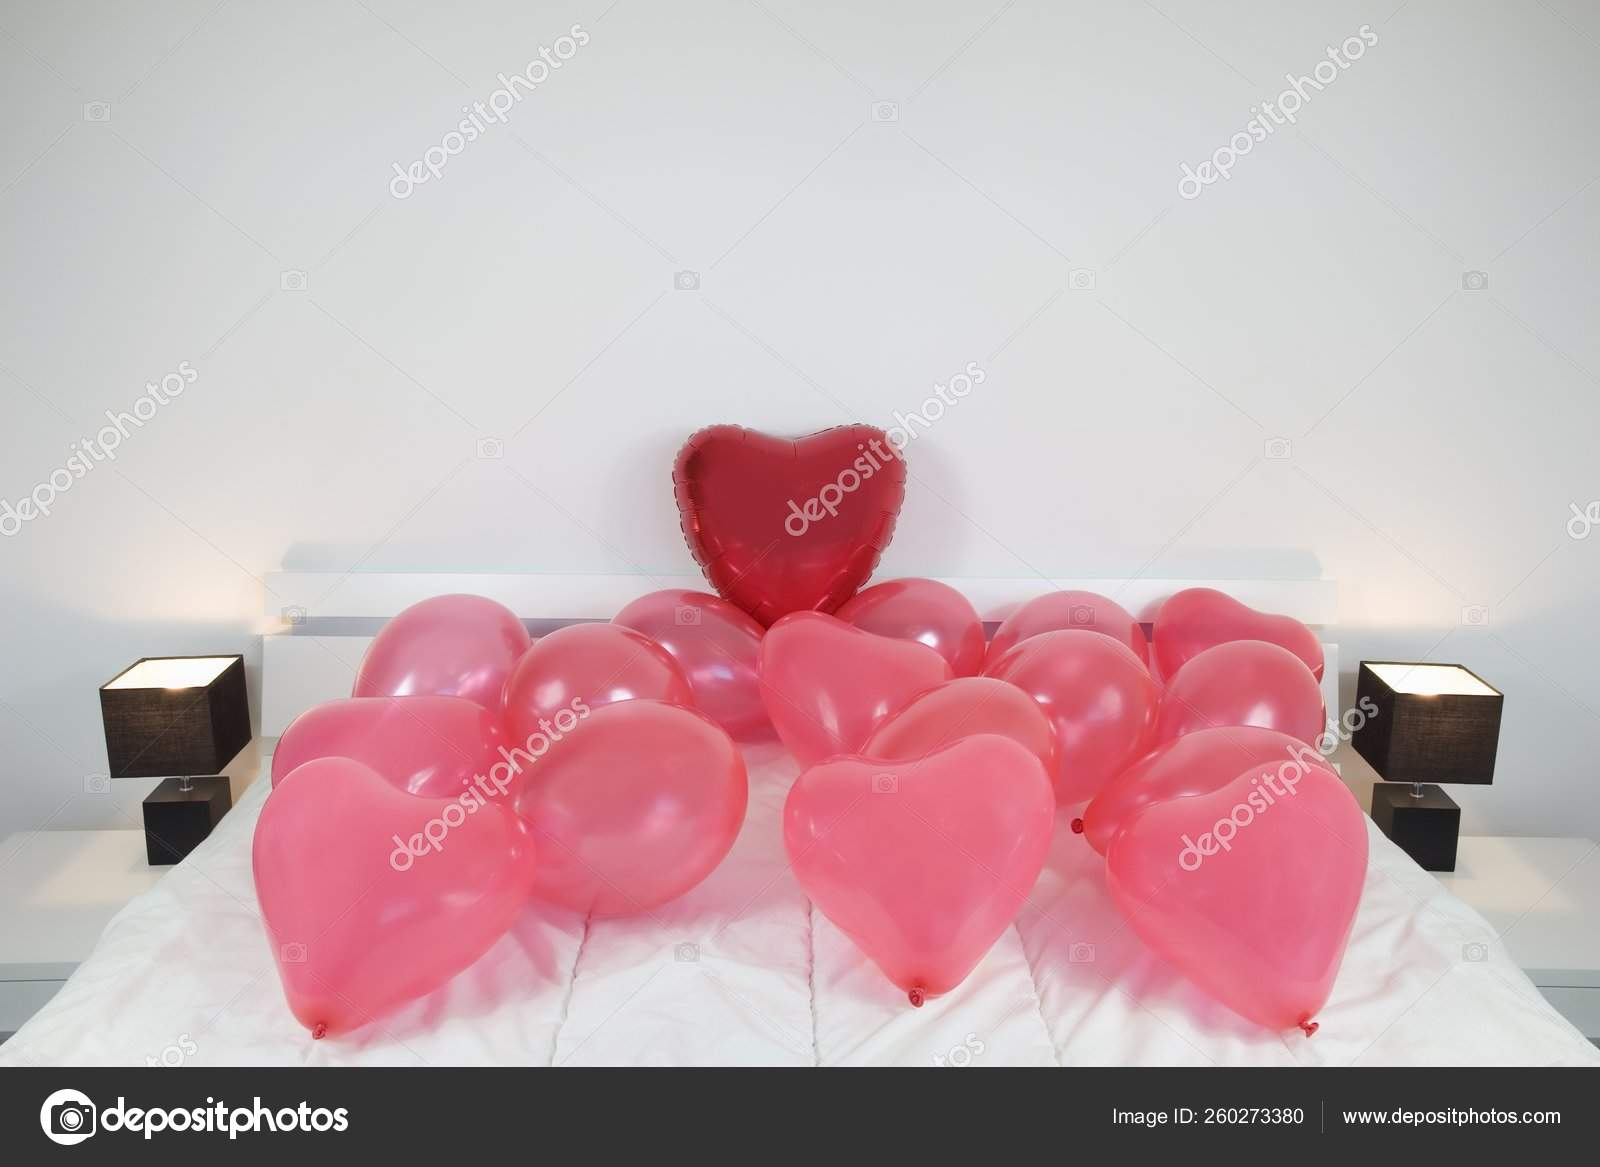 Red Love Heart Shaped Balloons King Size Bed Stock Photo Image By Yayimages 260273380